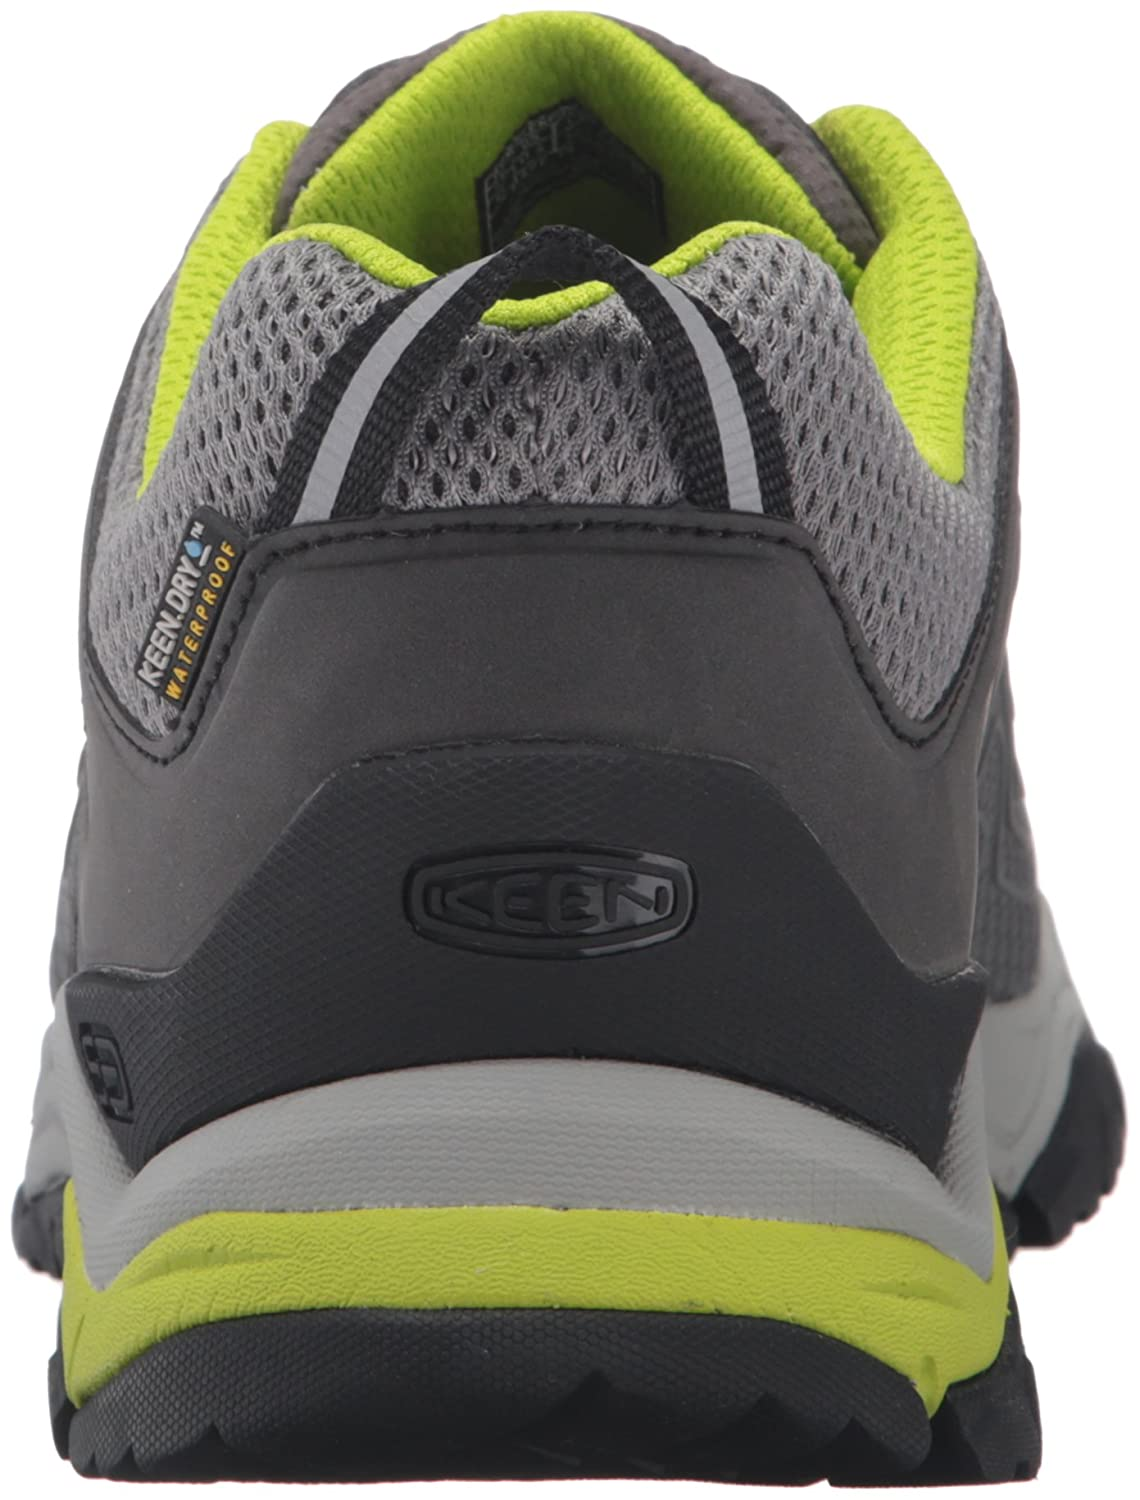 Keen Mens Aphlex Waterproof Shoe